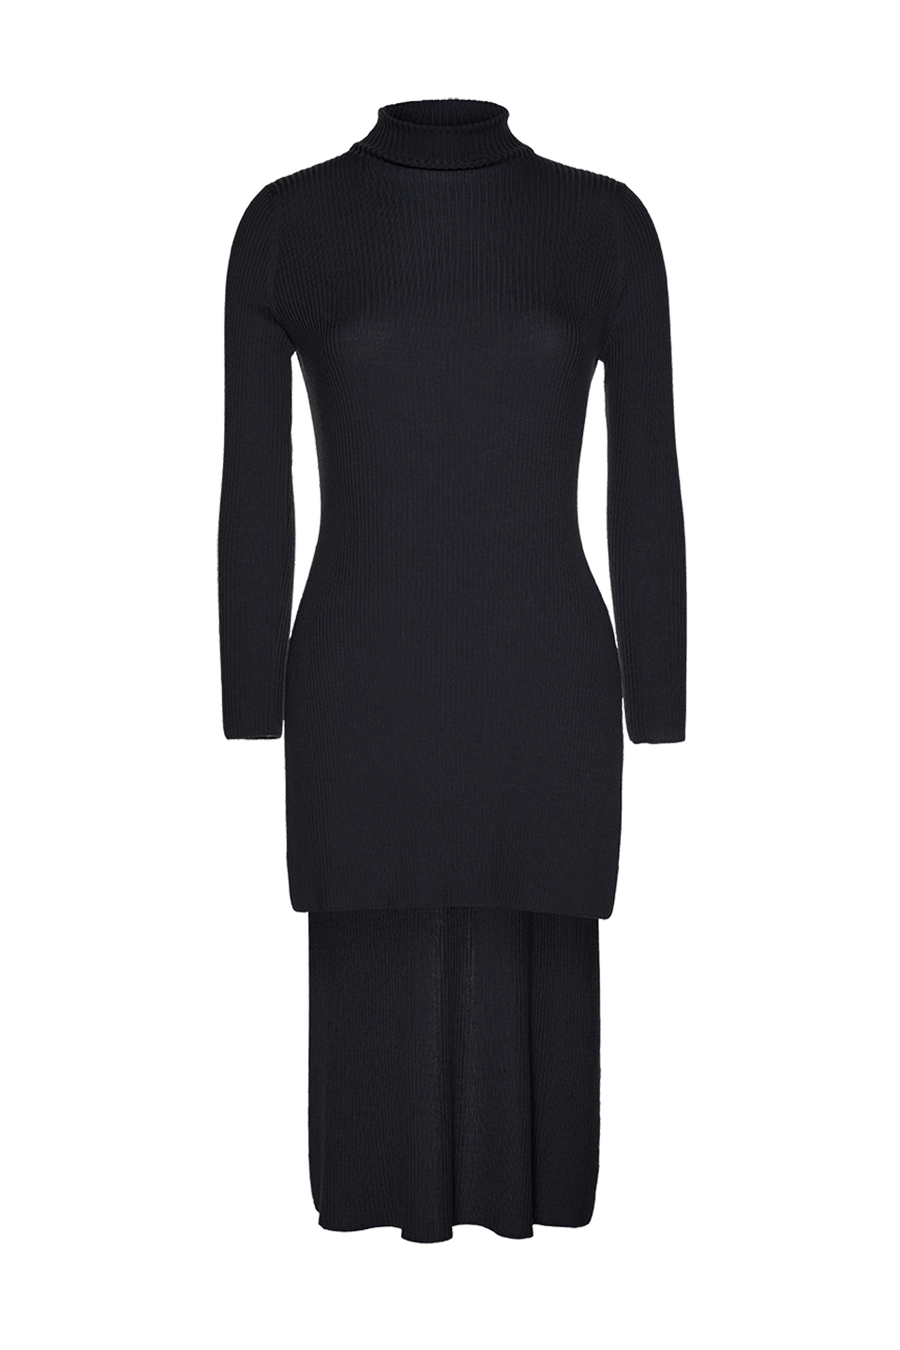 THE ST MORITZ RIB WOOL TURTLE NECK KNIT (CHAPTER THREE by Arjí©)